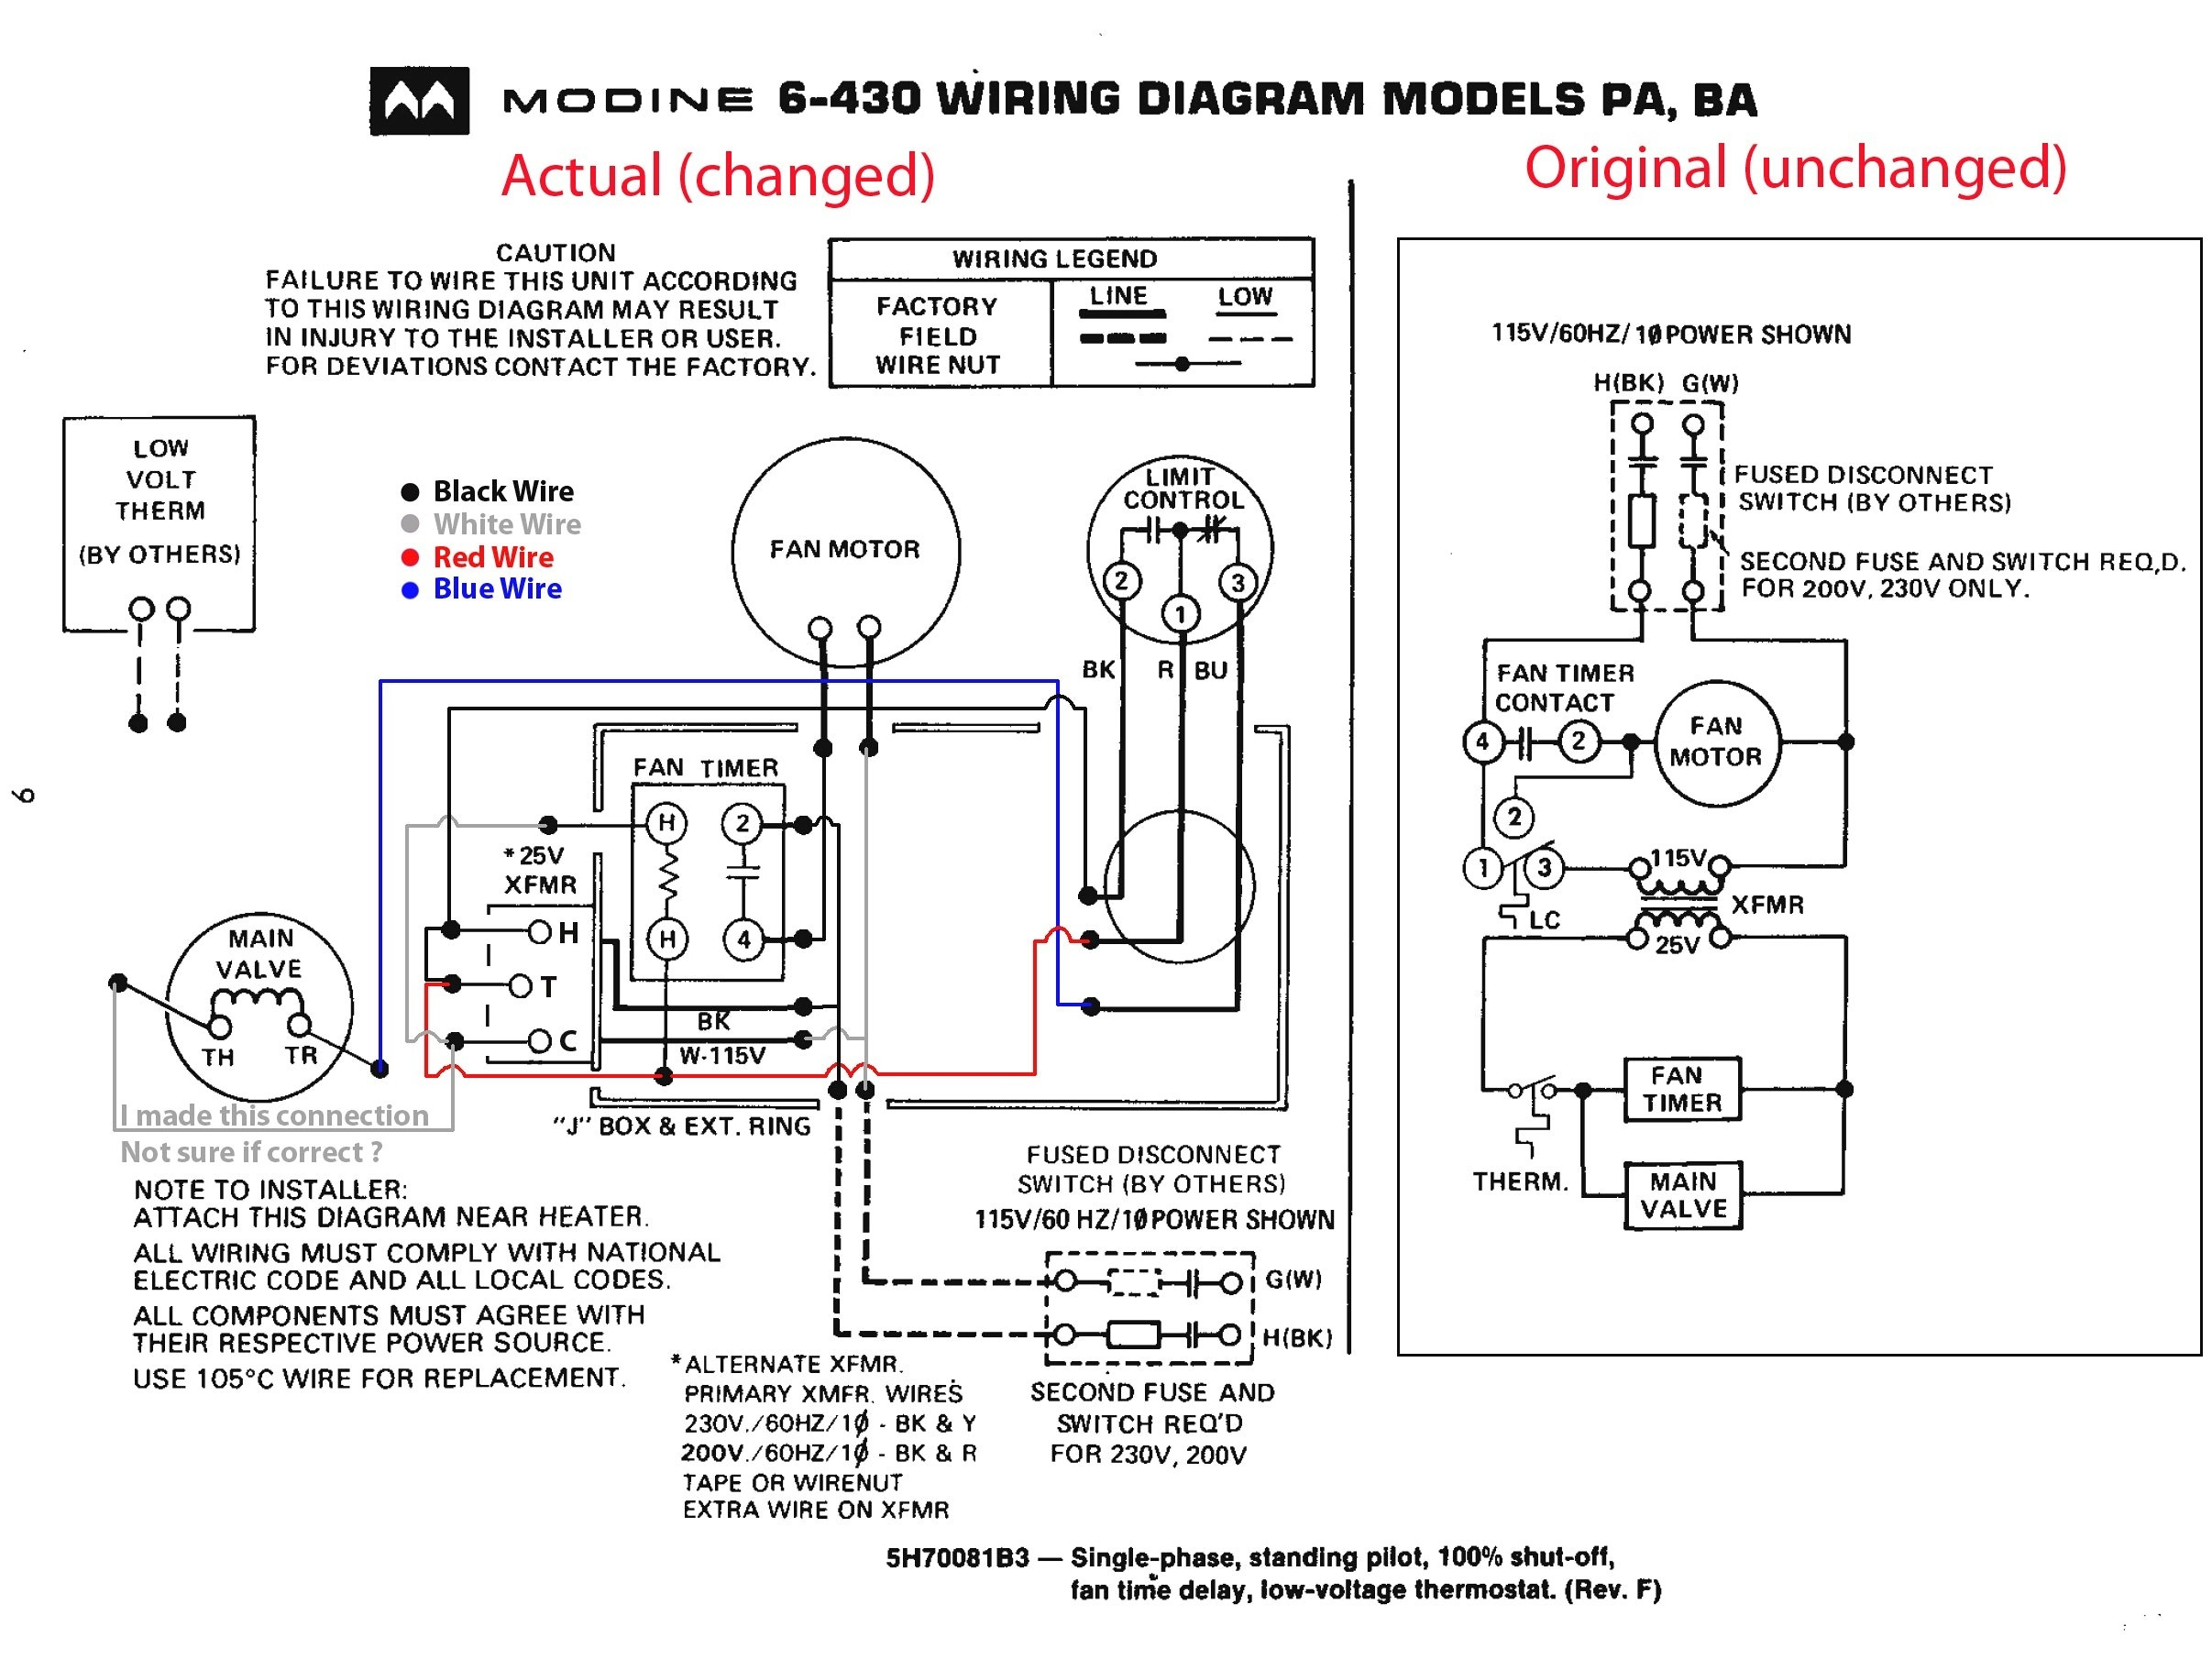 arcoaire furnace wiring diagram schematic diagramheil furnace wiring diagram wiring diagram best data whirlpool furnace diagram heil furnace wiring diagram troubleshooting